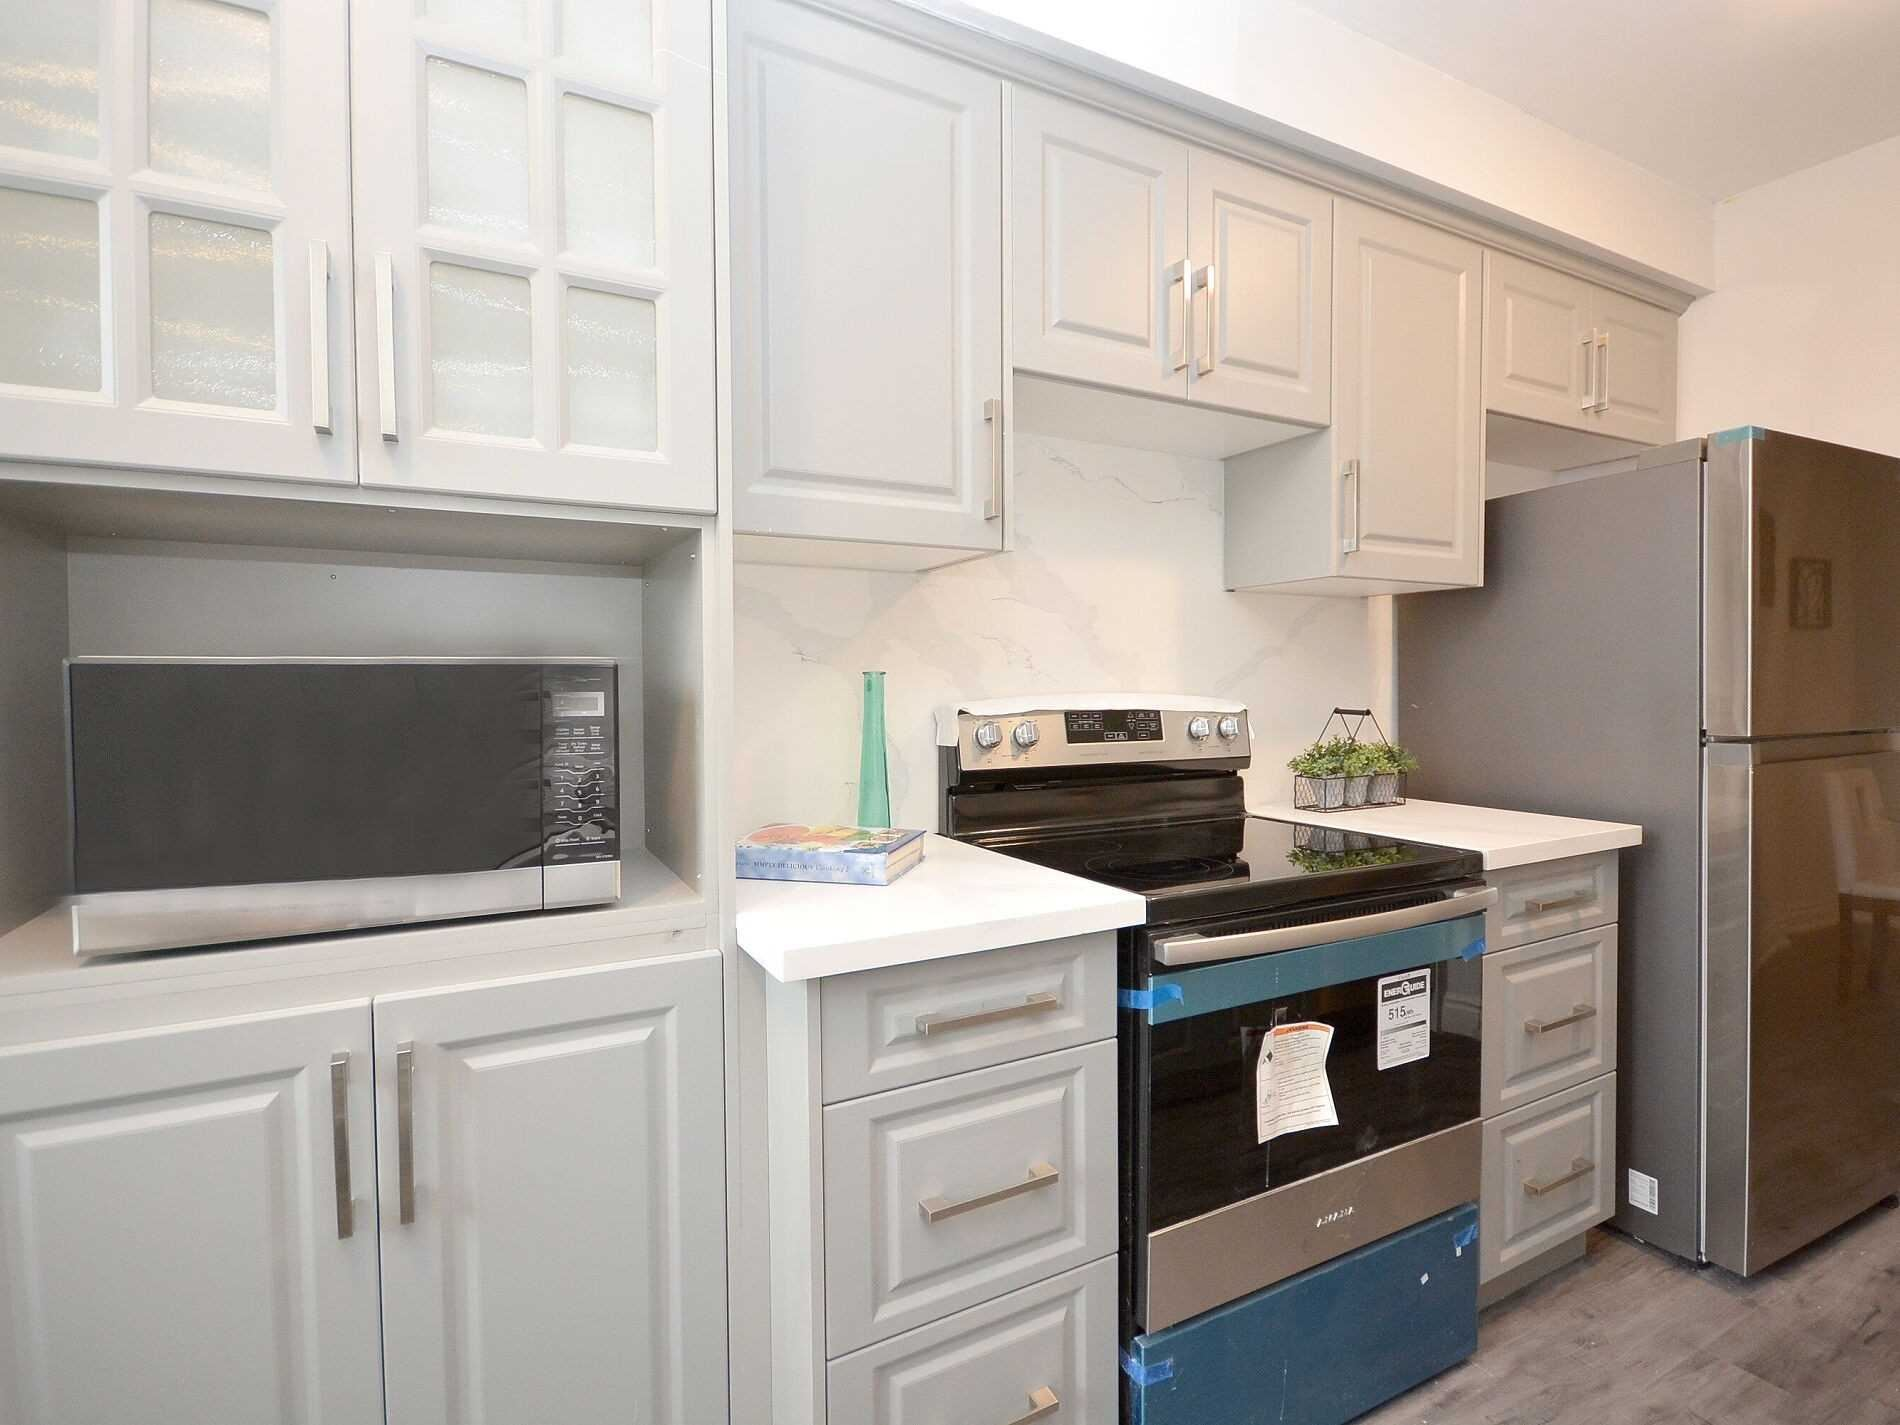 1625 Bloor St E #214, Mississauga, ON L4X1S3 - MLS#: W5406766